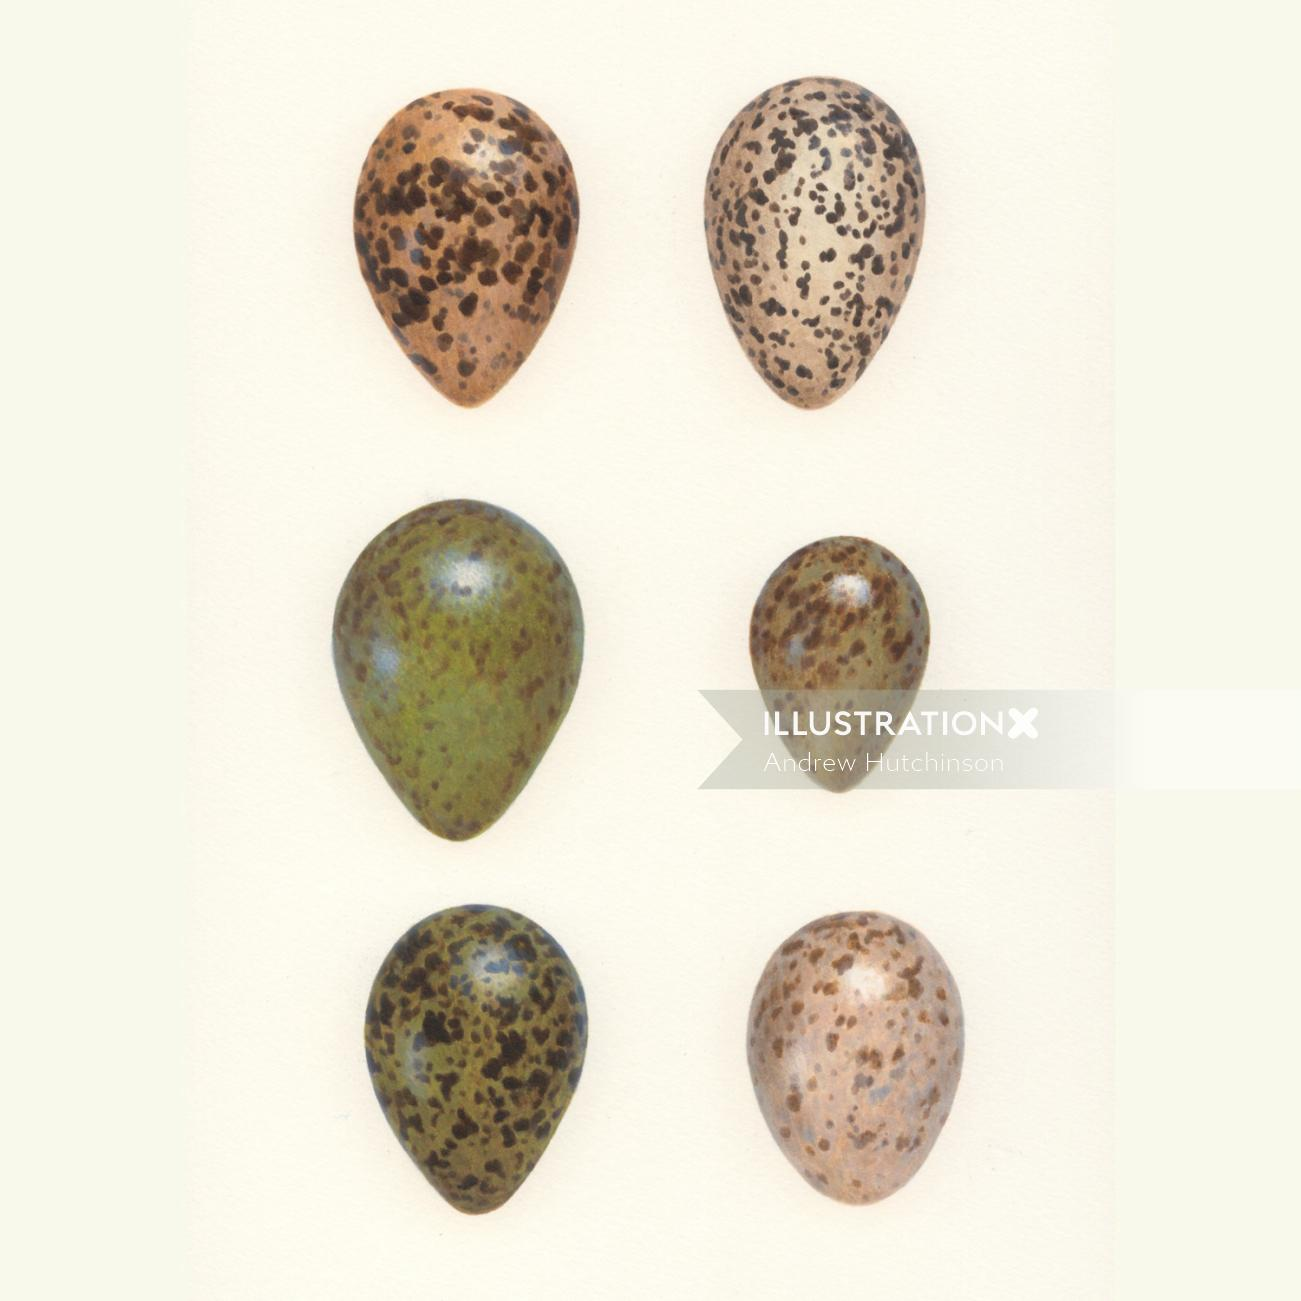 Bird Eggs Illustration, Birds and Wildlife images © Andrew Hutchinson